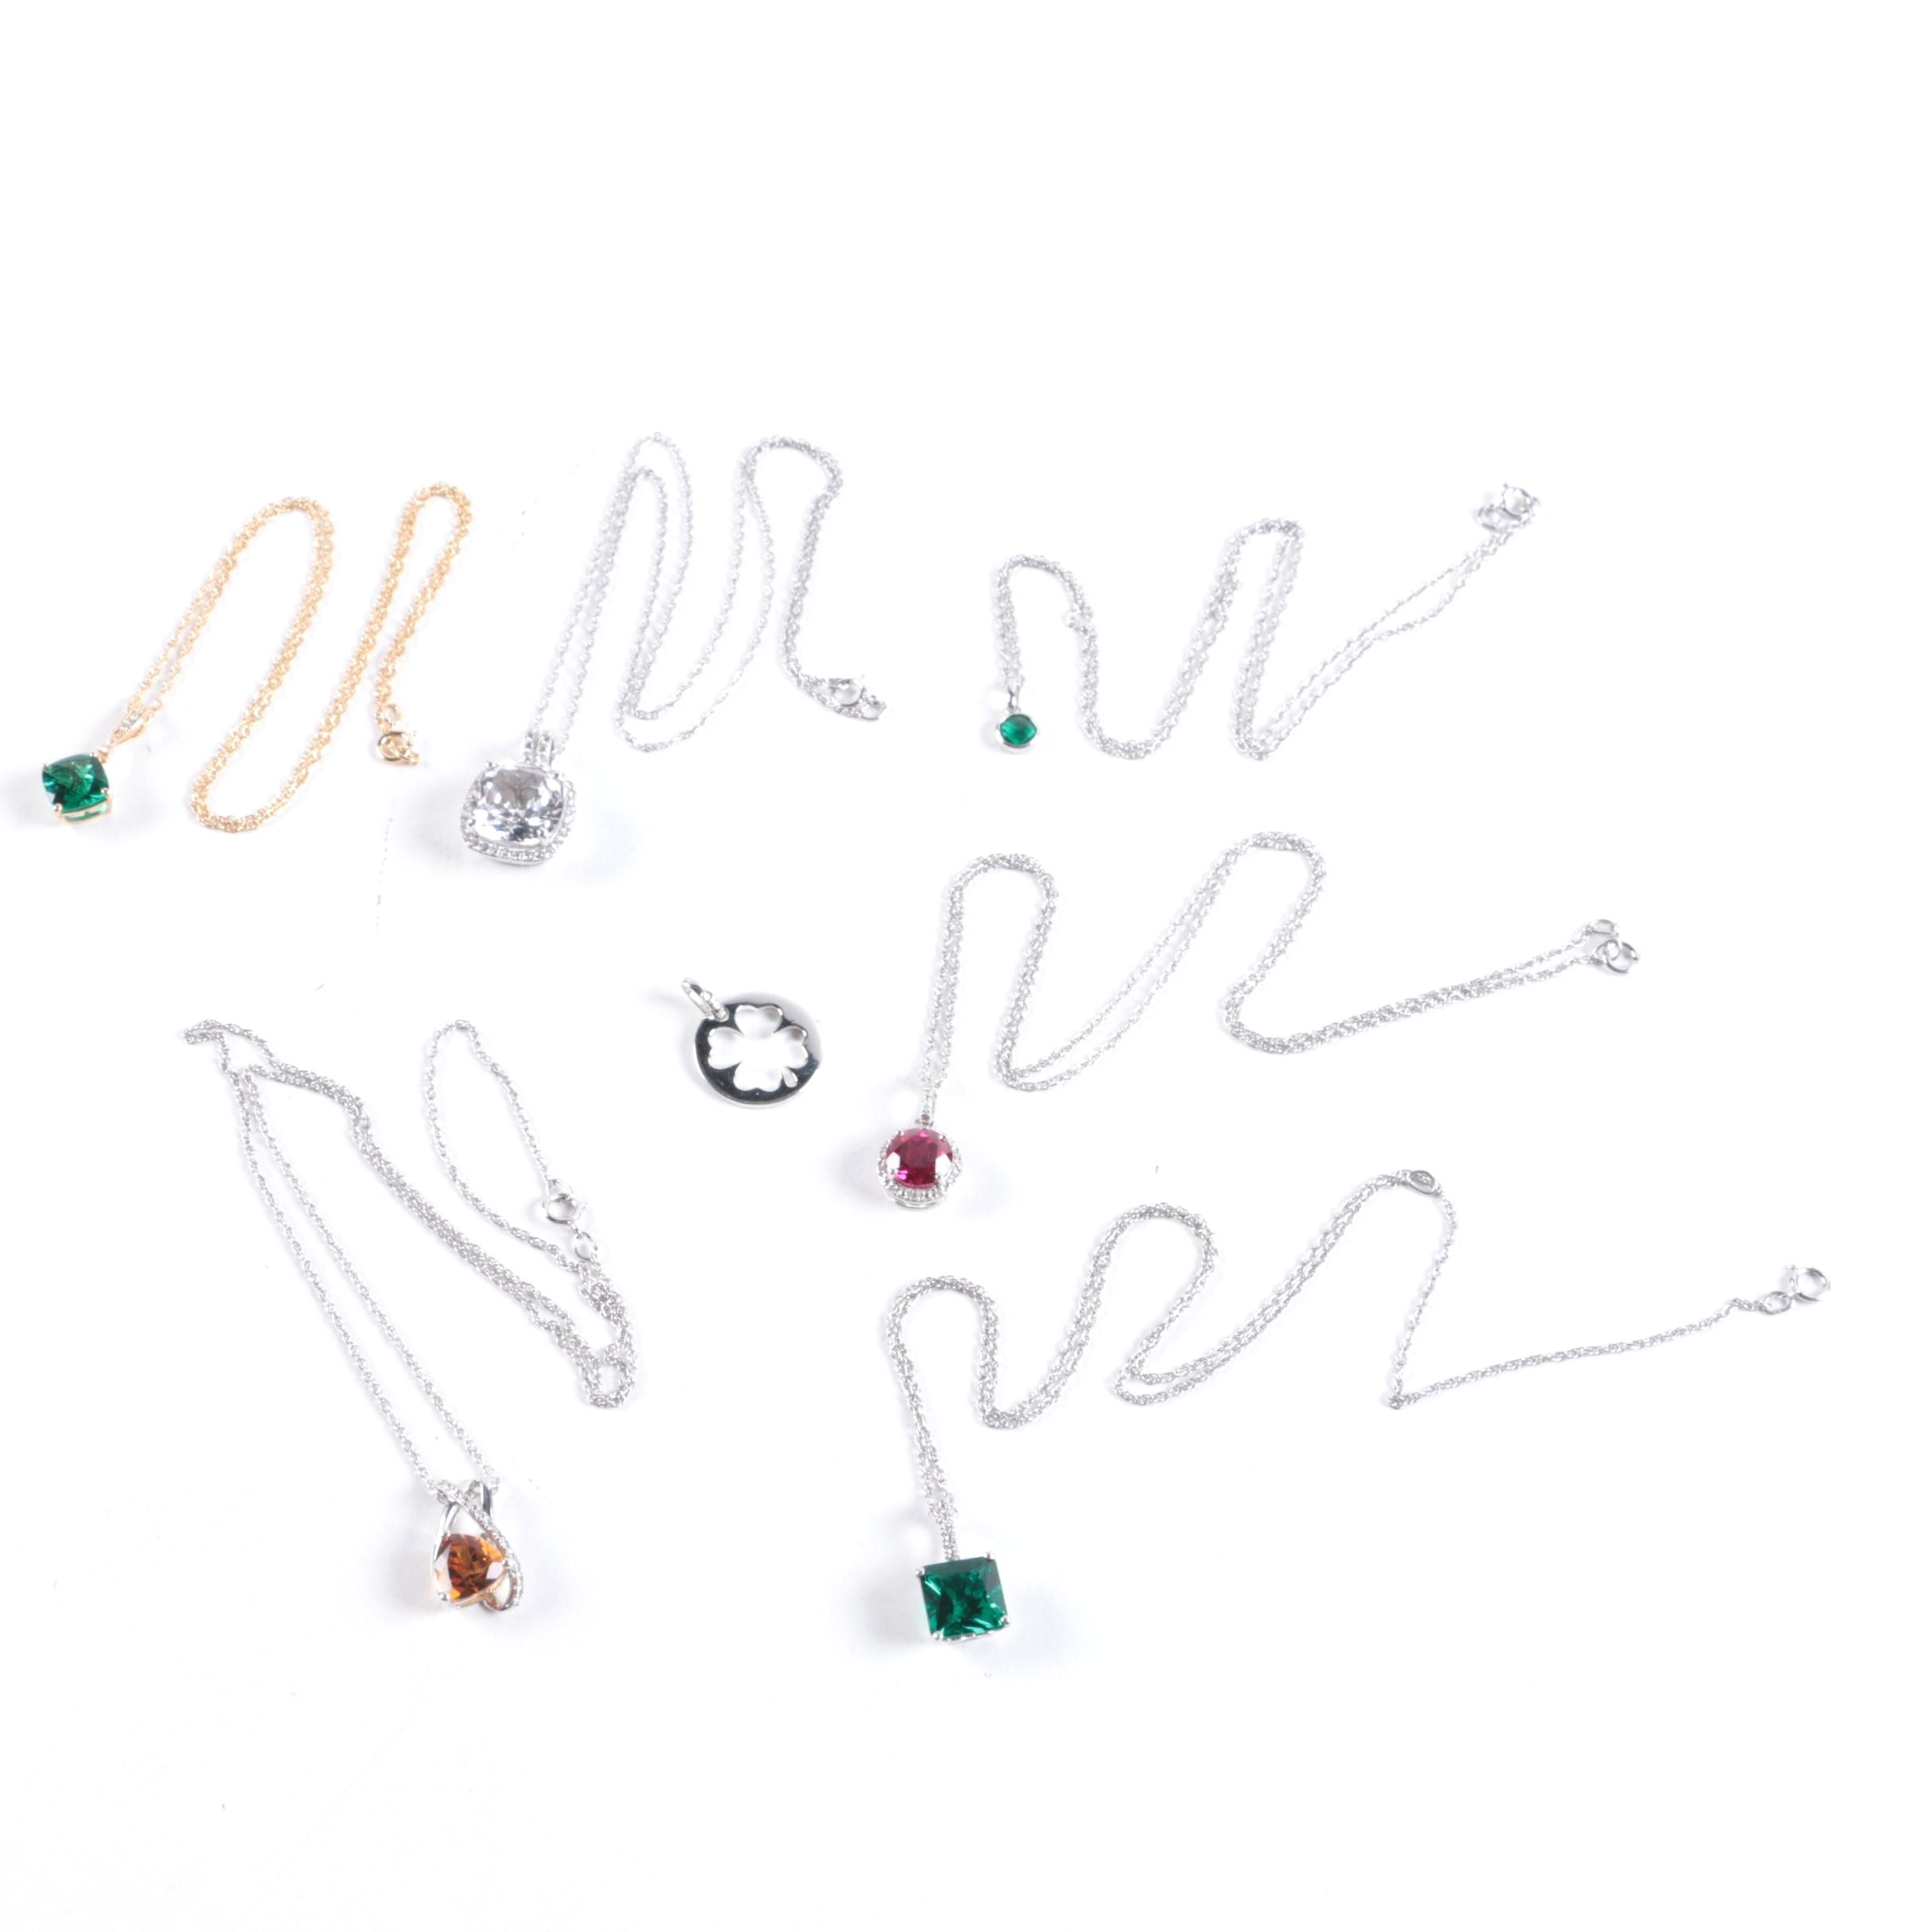 Sterling Silver and Gemstone Necklace Assortment